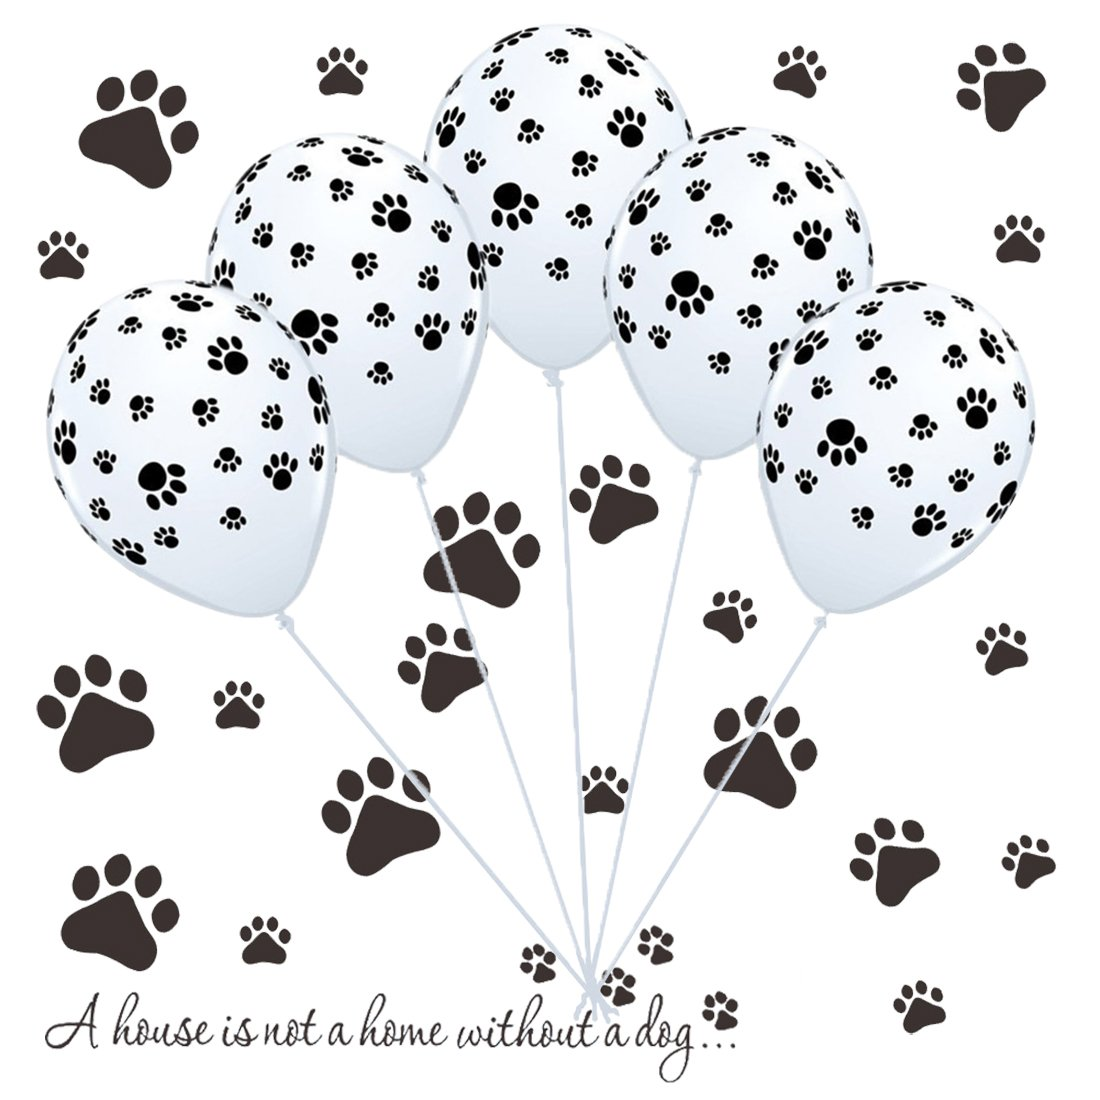 50 Dog Paw Print Balloons & Vinyl Decals Kit for Paw Patrol Birthday Party, Puppy Party, Dog Animal Rescue Events